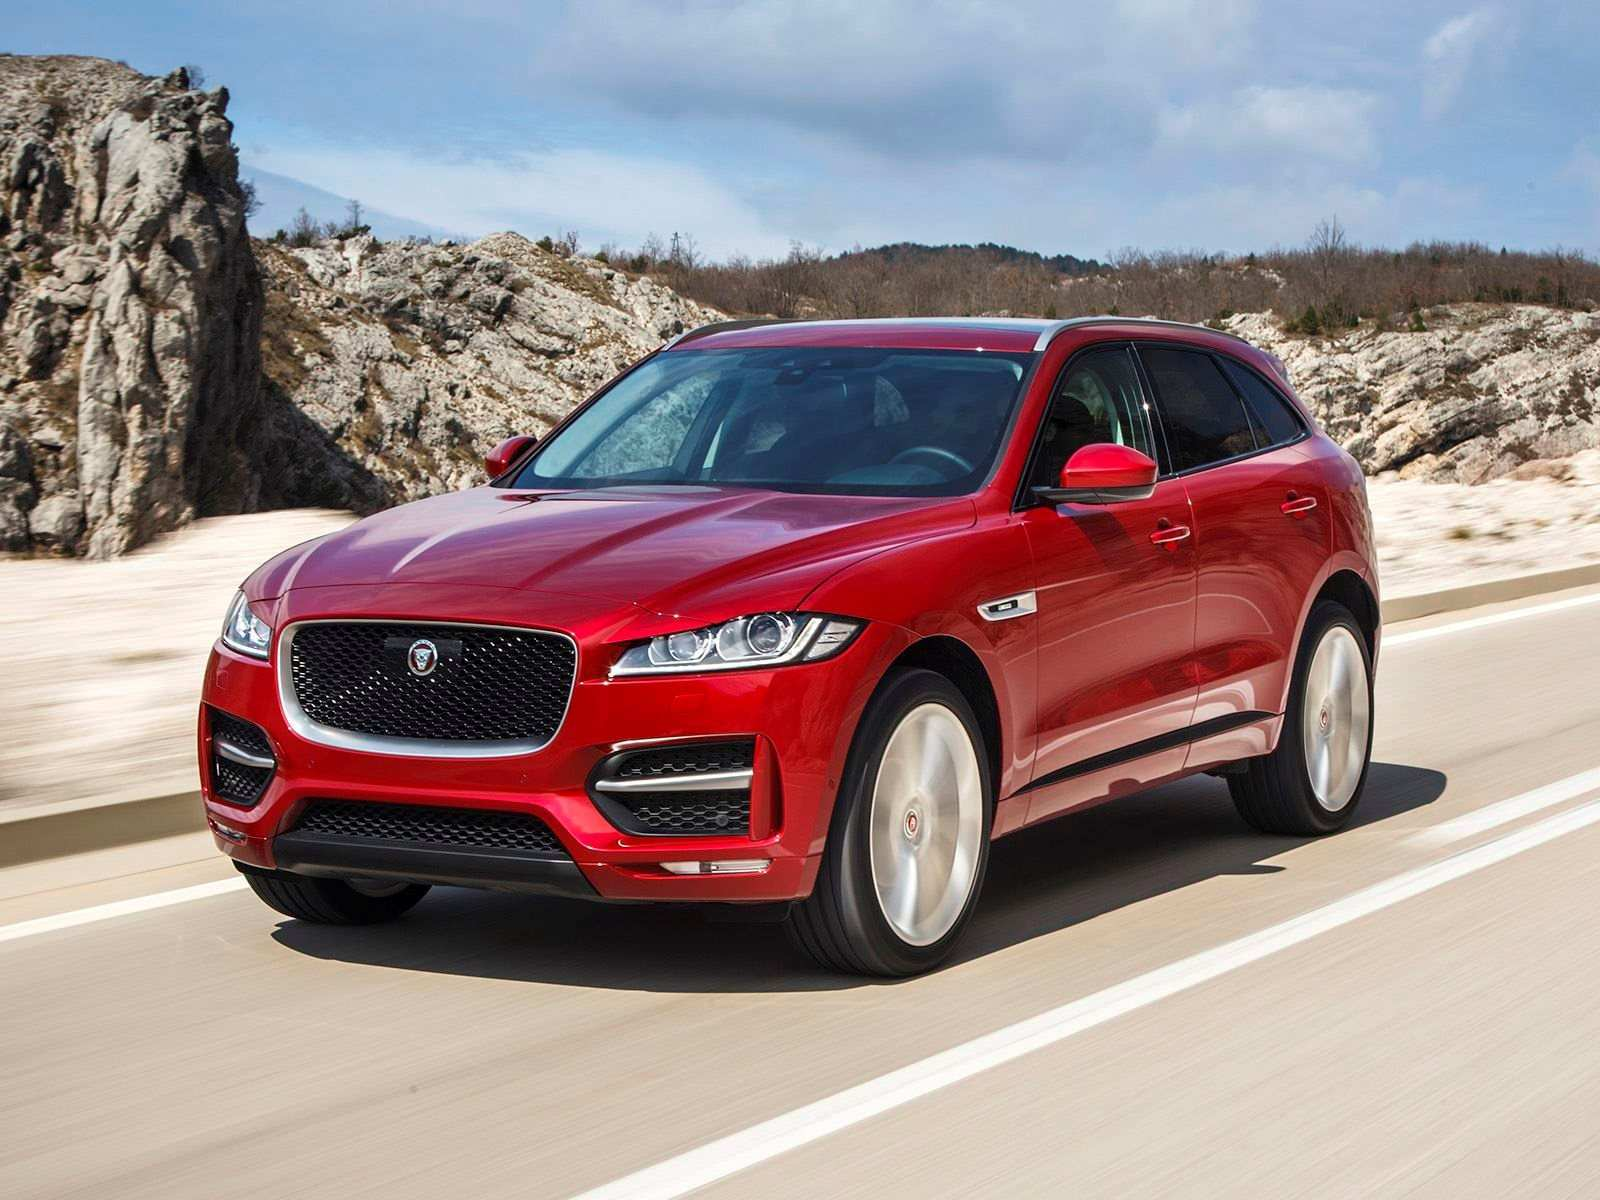 24 The The Jaguar F Type Facelift 2019 New Engine Reviews for The Jaguar F Type Facelift 2019 New Engine